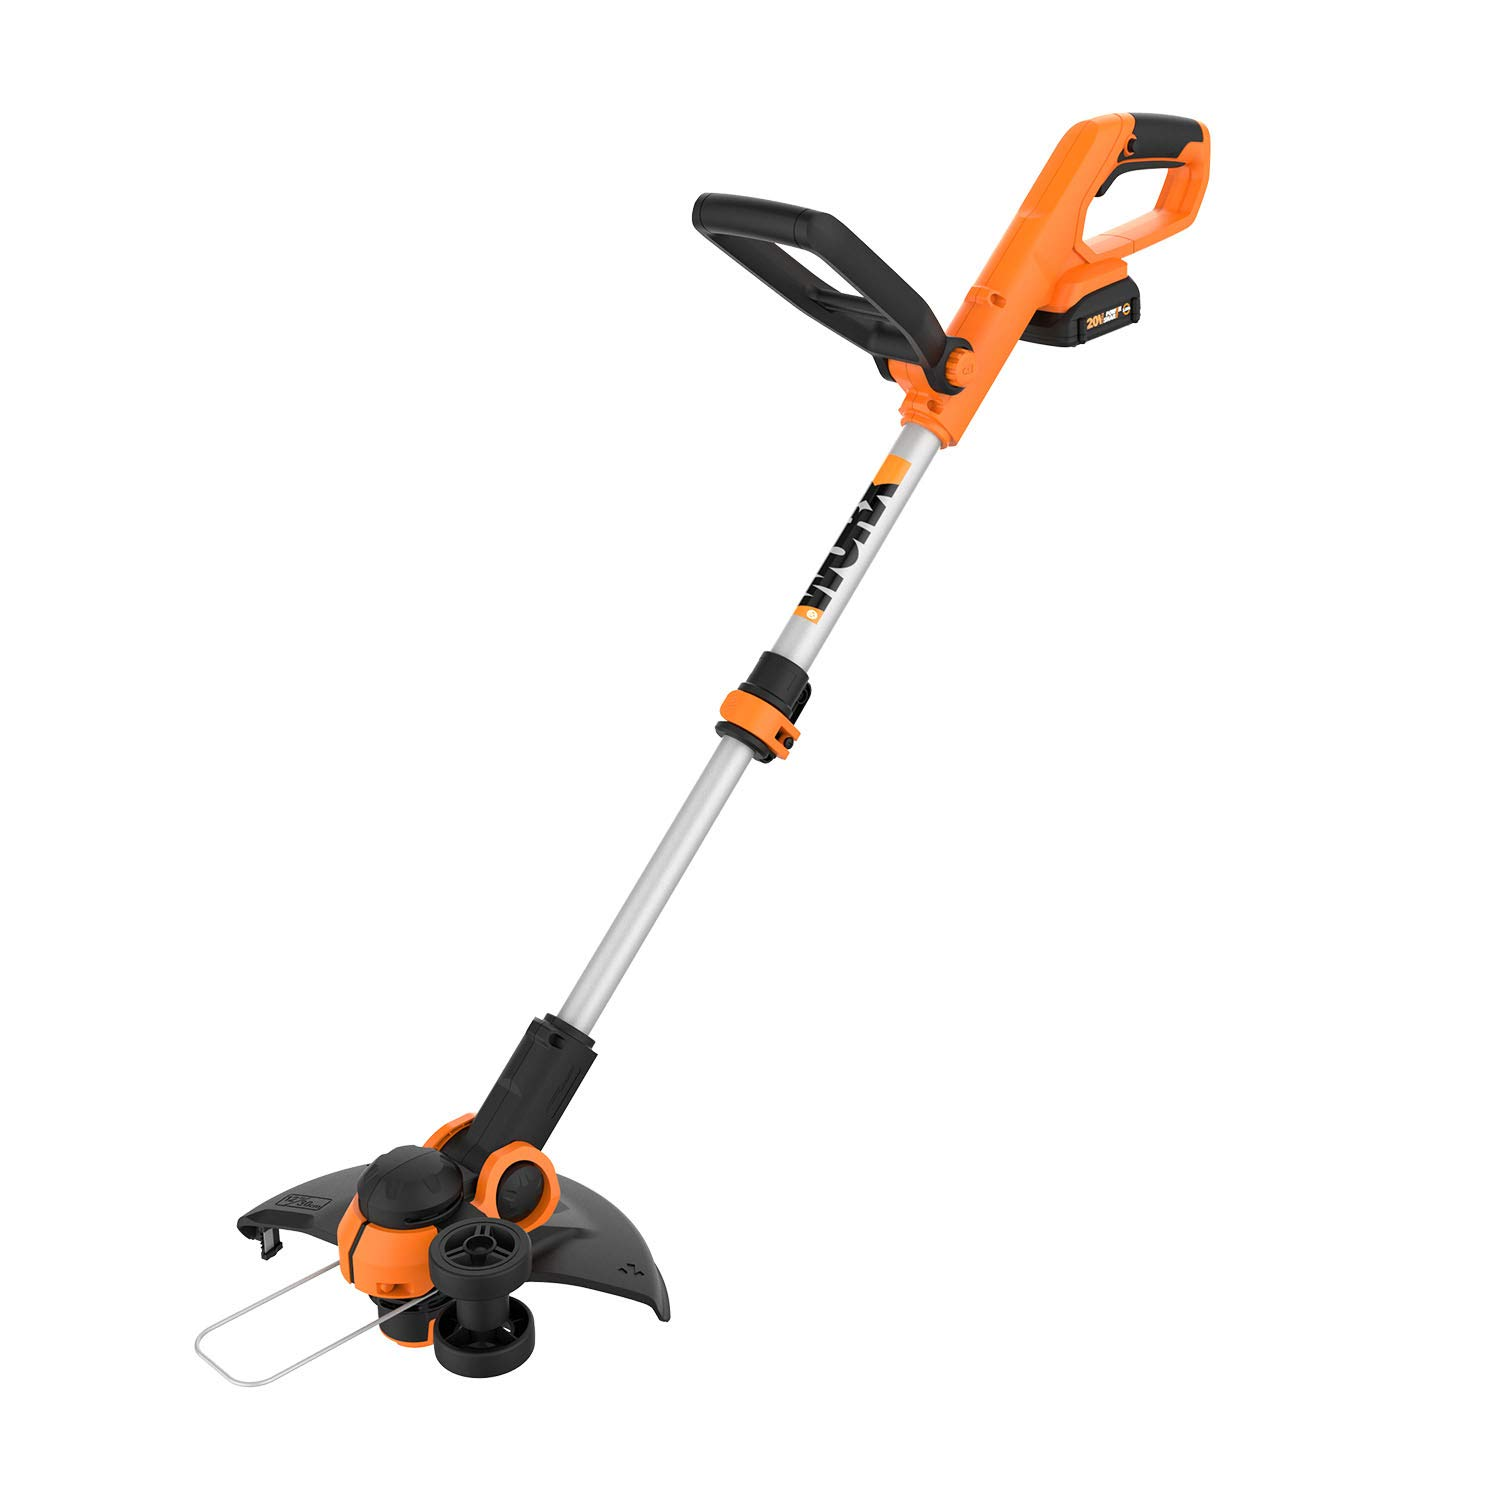 WG162 Cordless Trimmer Battery included